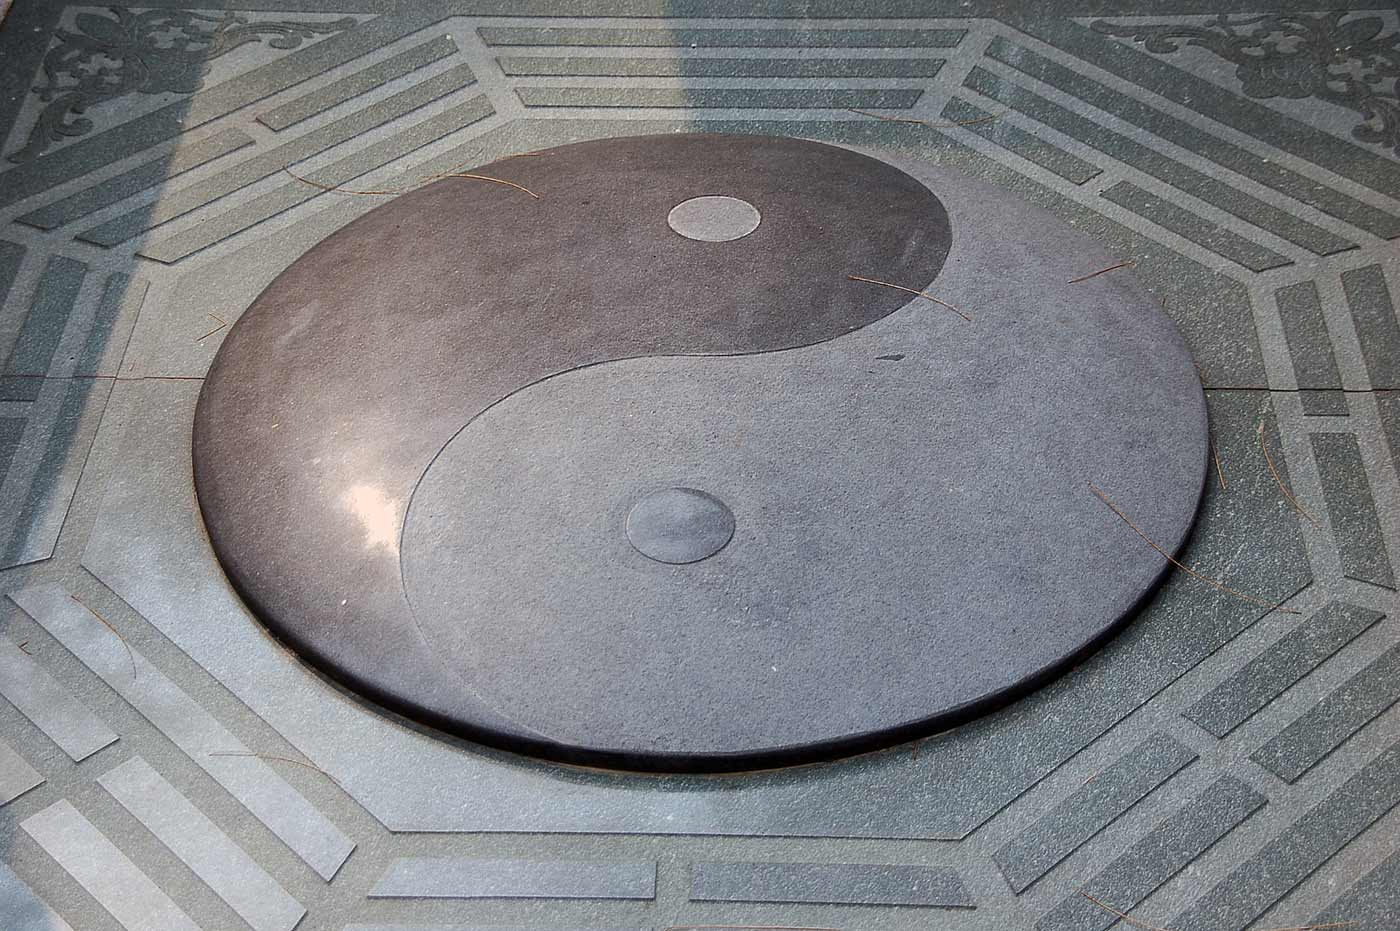 Yin Yang carved in stone.